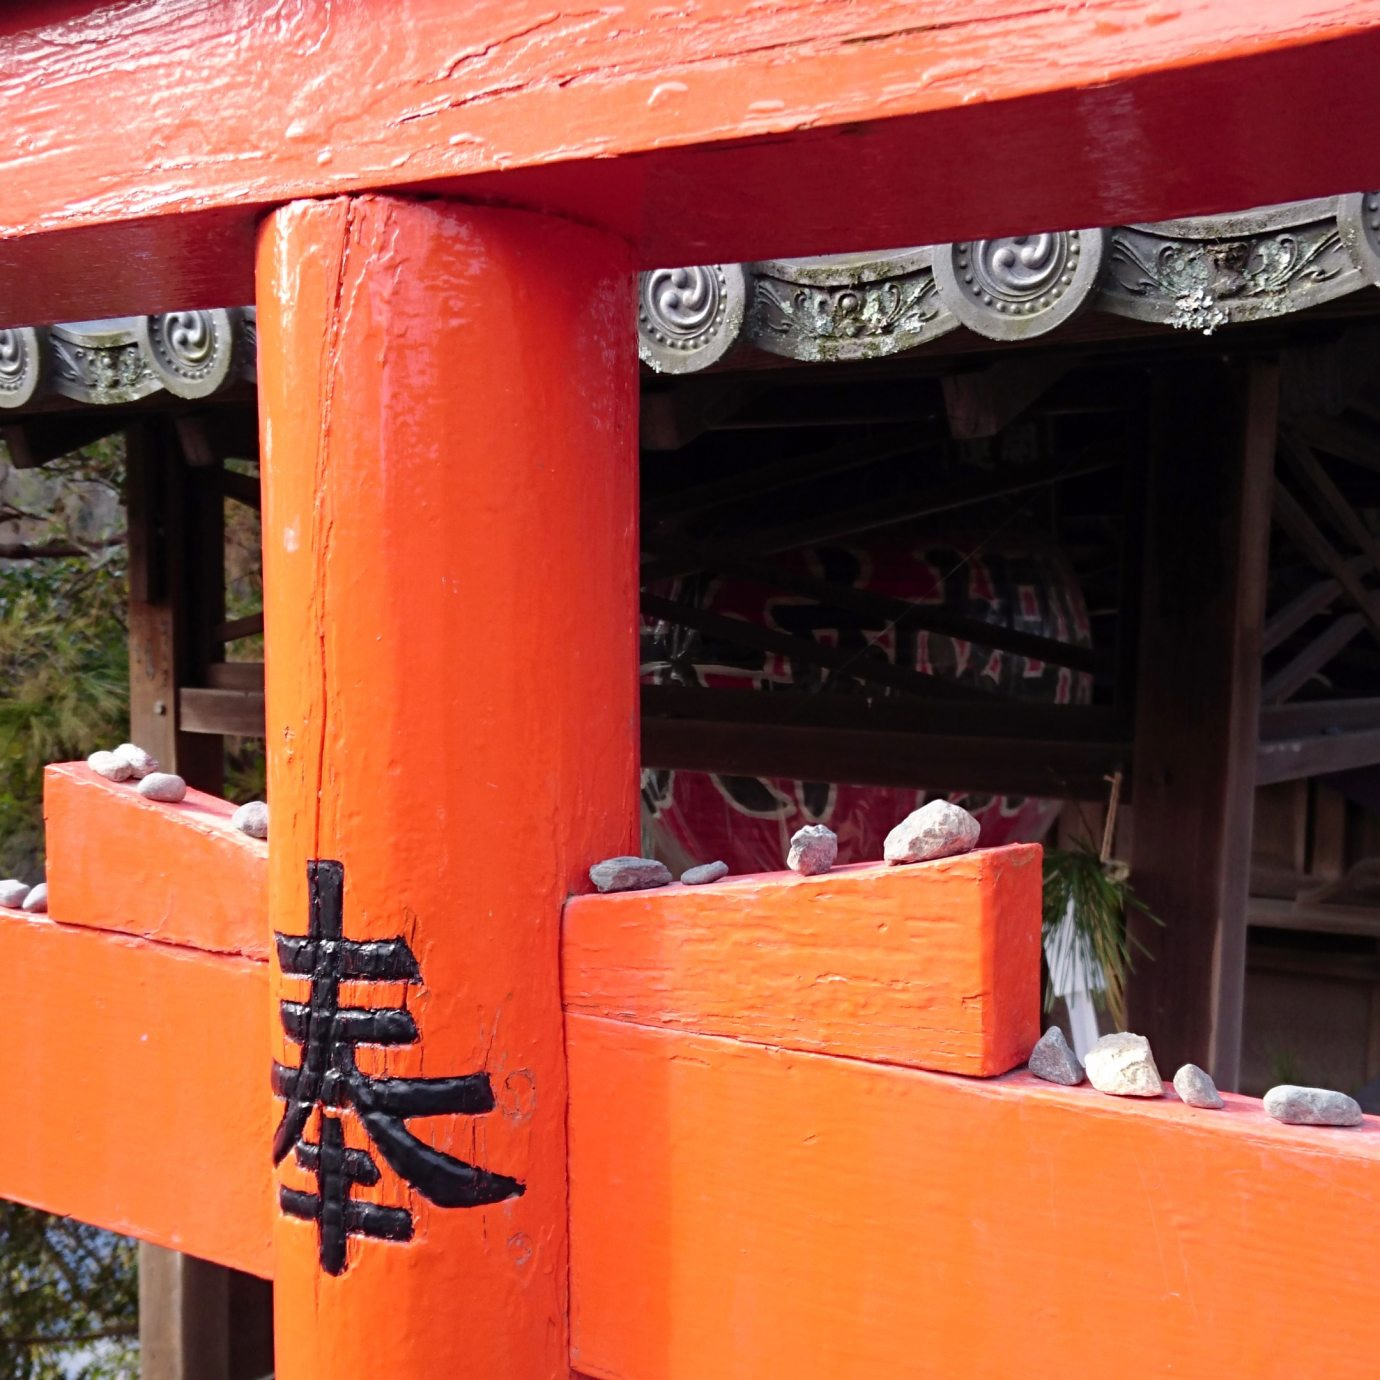 Detail of Torii Gate in Ryoanji, Kyoto